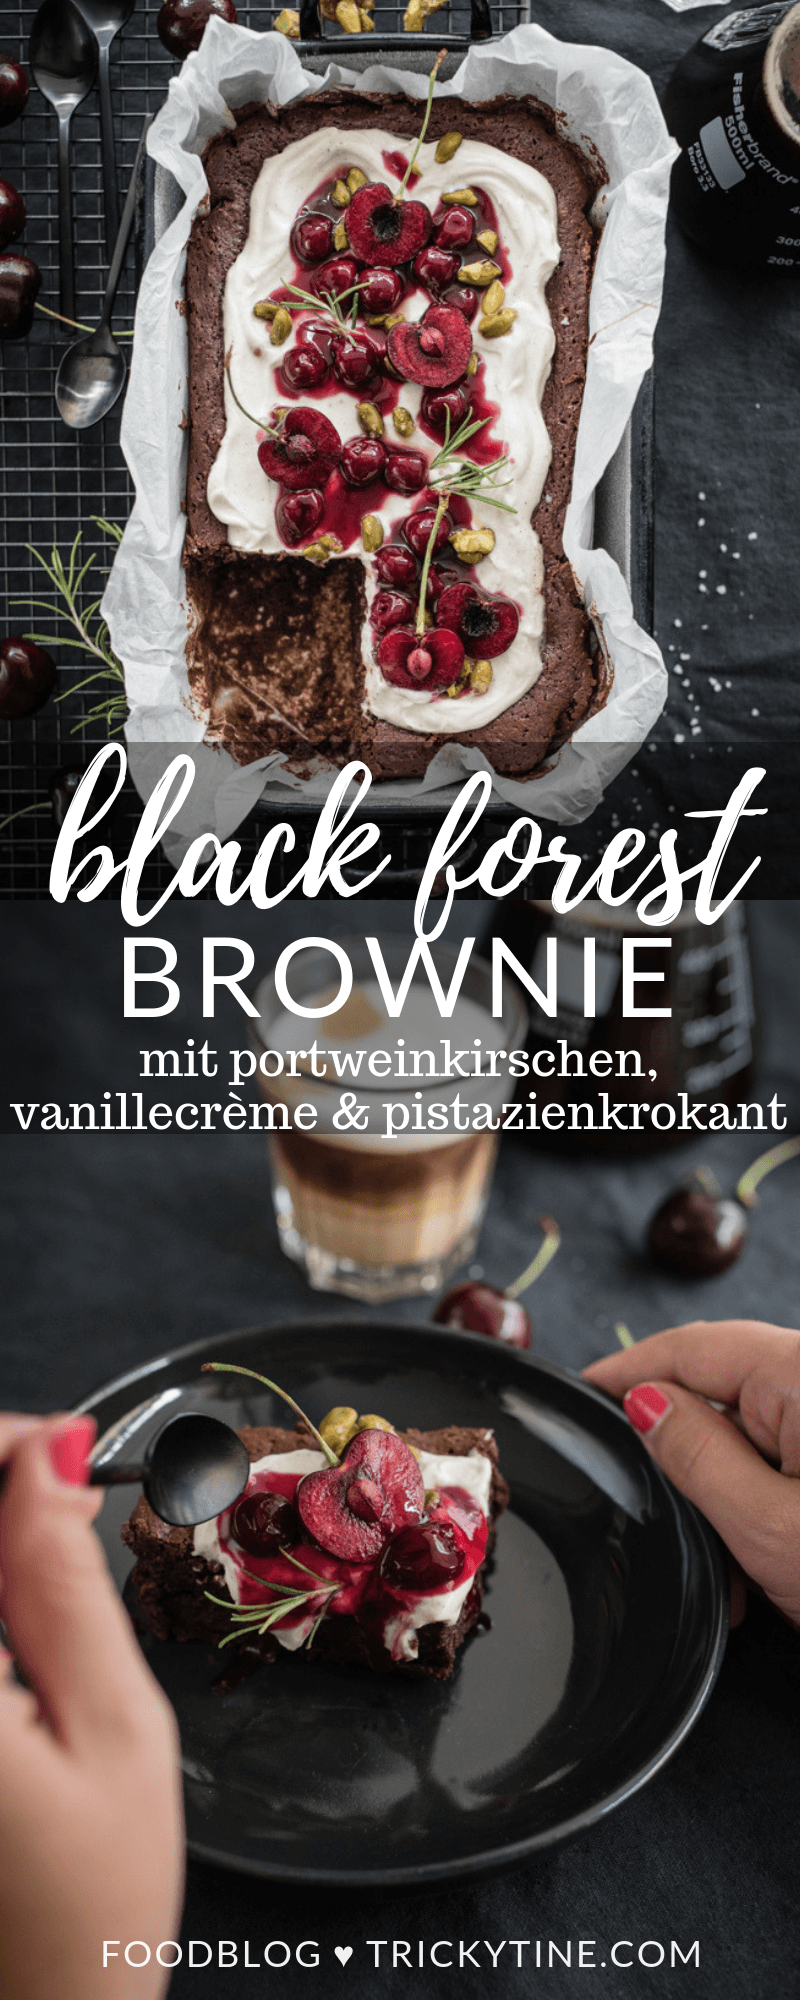 black forest brownie trickytine